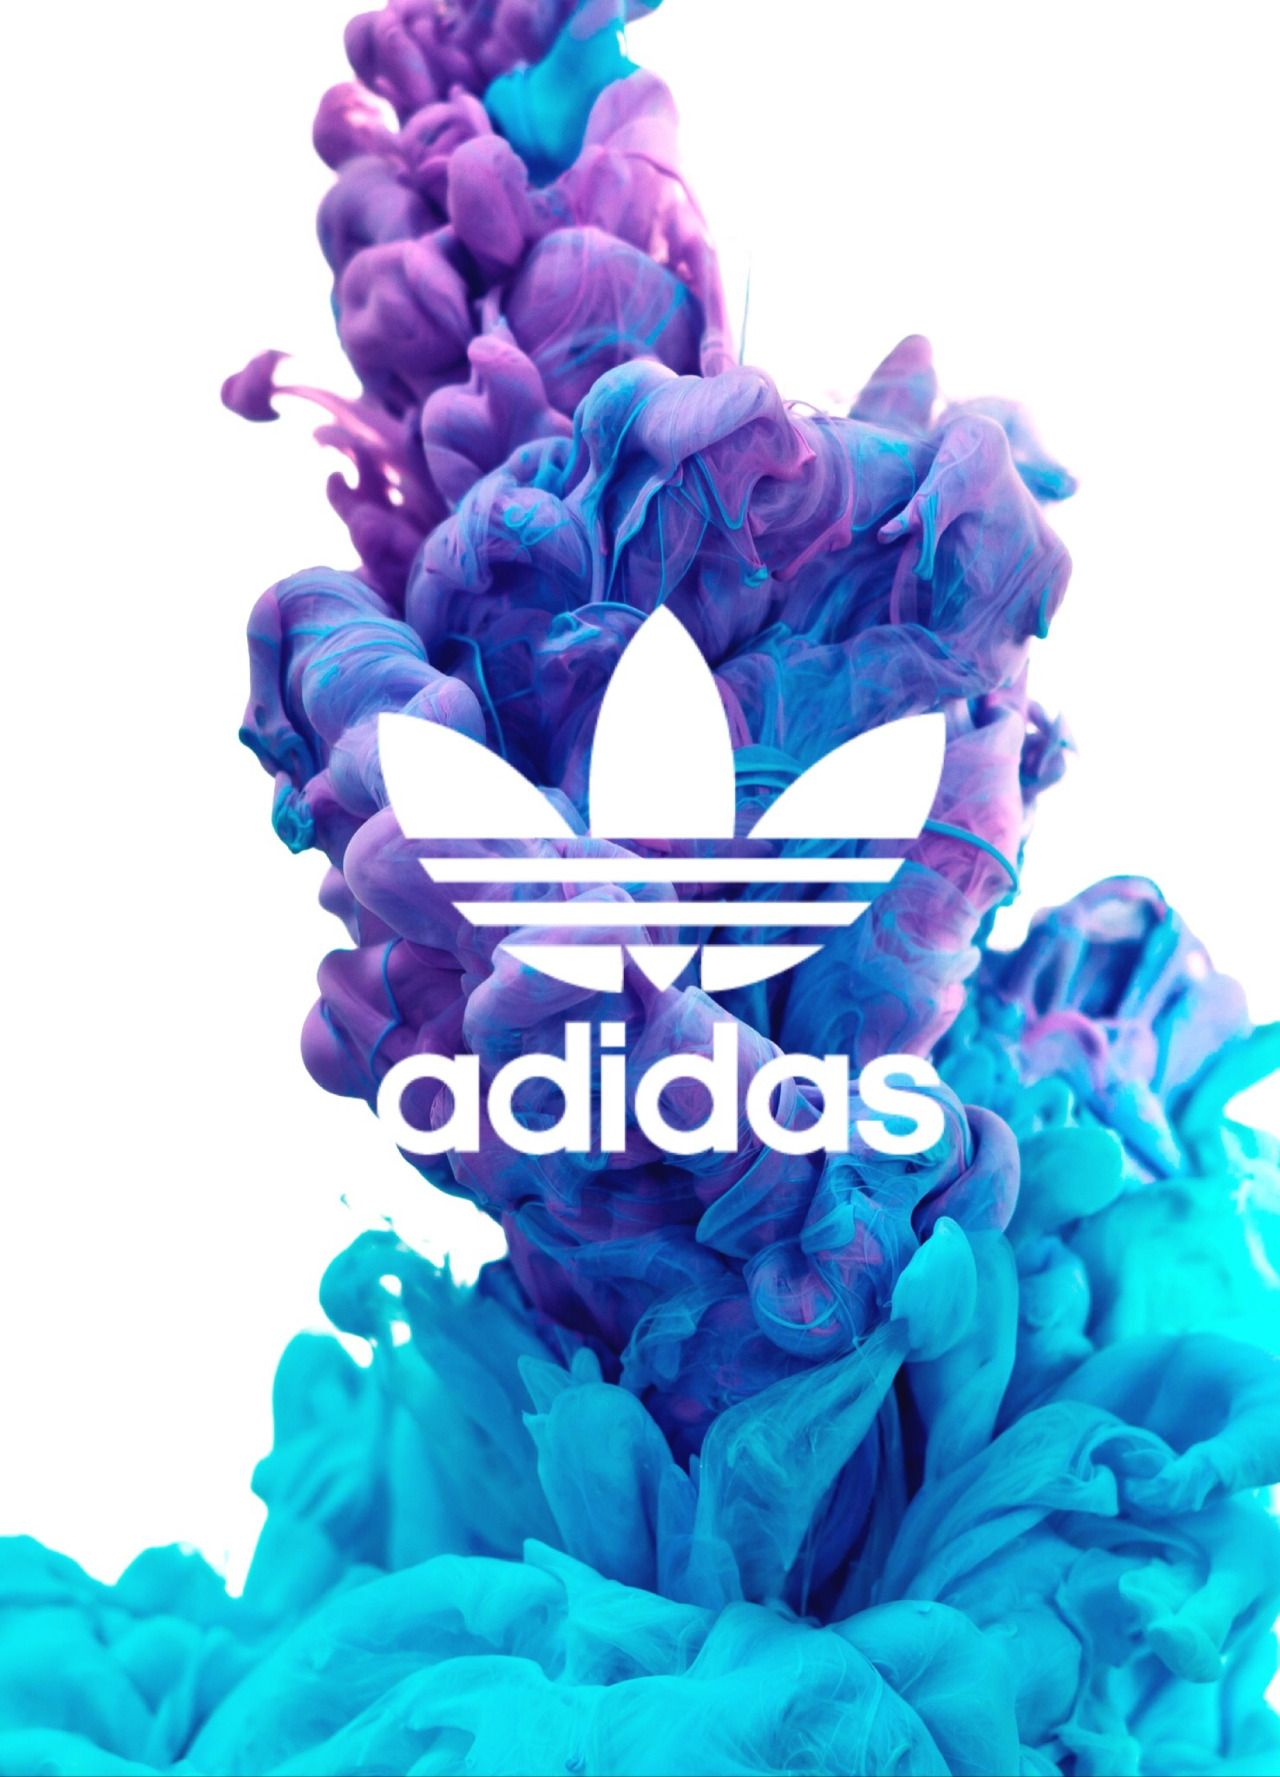 Cute Cool Wallpapers For Iphone 29 On Winter Outfits Pinterest Adidas Wallpaper